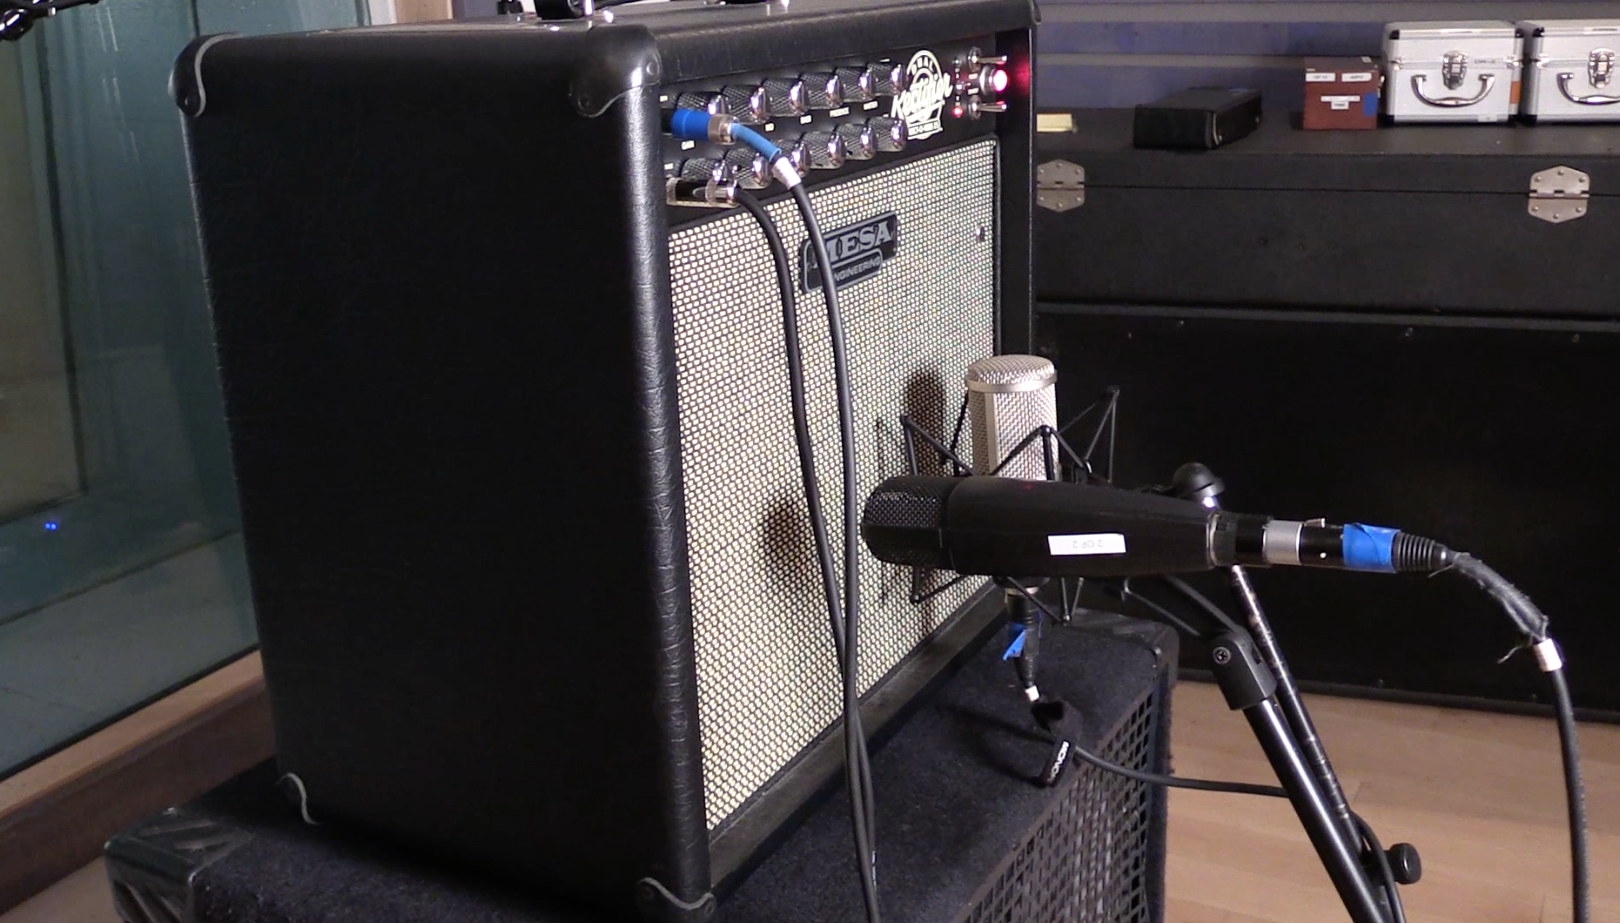 Mesa Boogie Rectoverb 25 guitar amp with a dual-mic set up:Sennheiser 421 dynamic cardioid microphone with a Cascade DR-2 ribbon figure-8 microphone